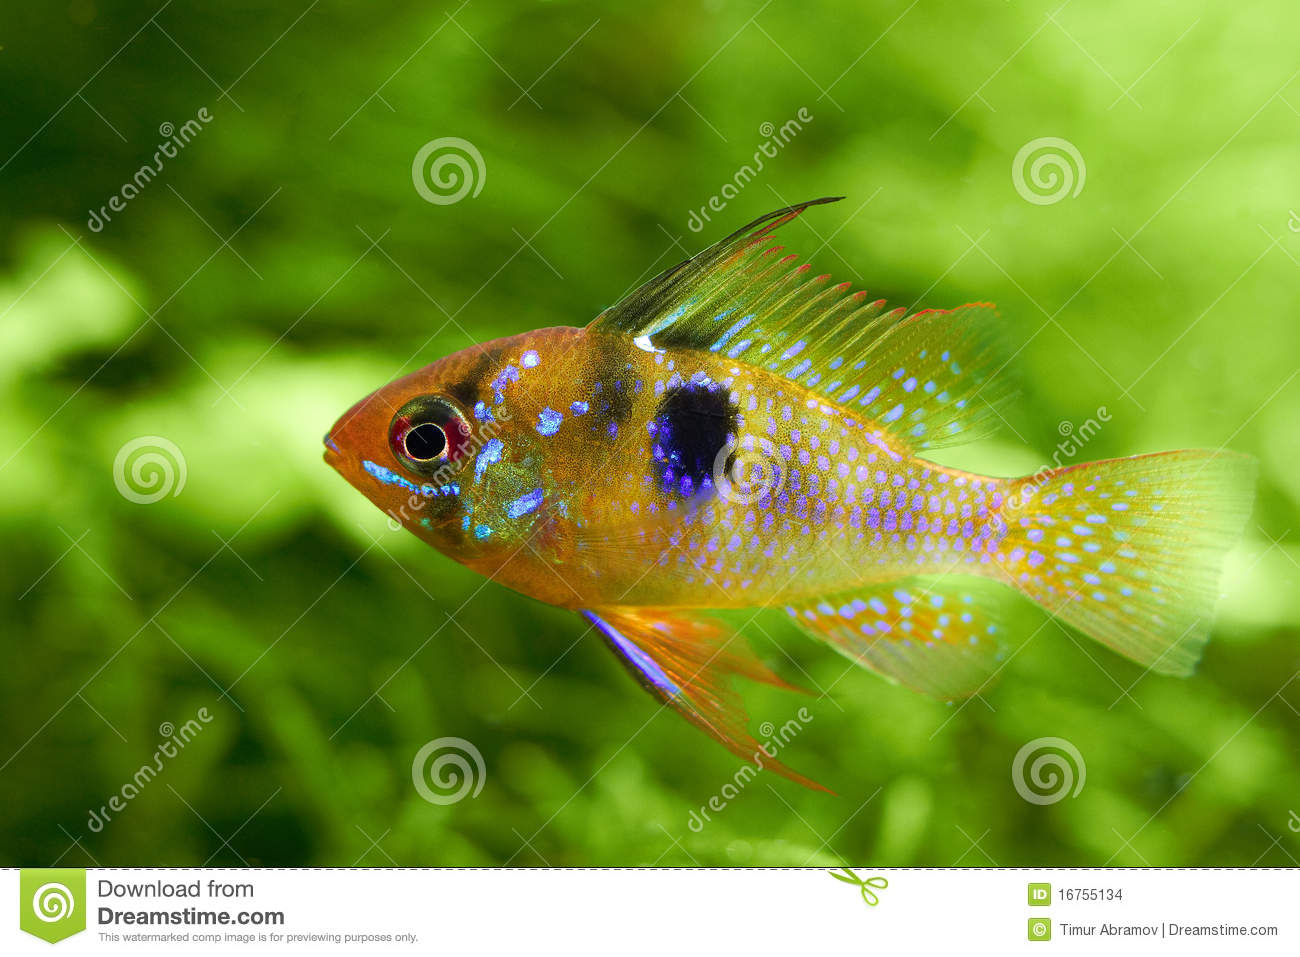 Freshwater aquarium fish photos - Freshwater Aquarium Fish On A Green Background